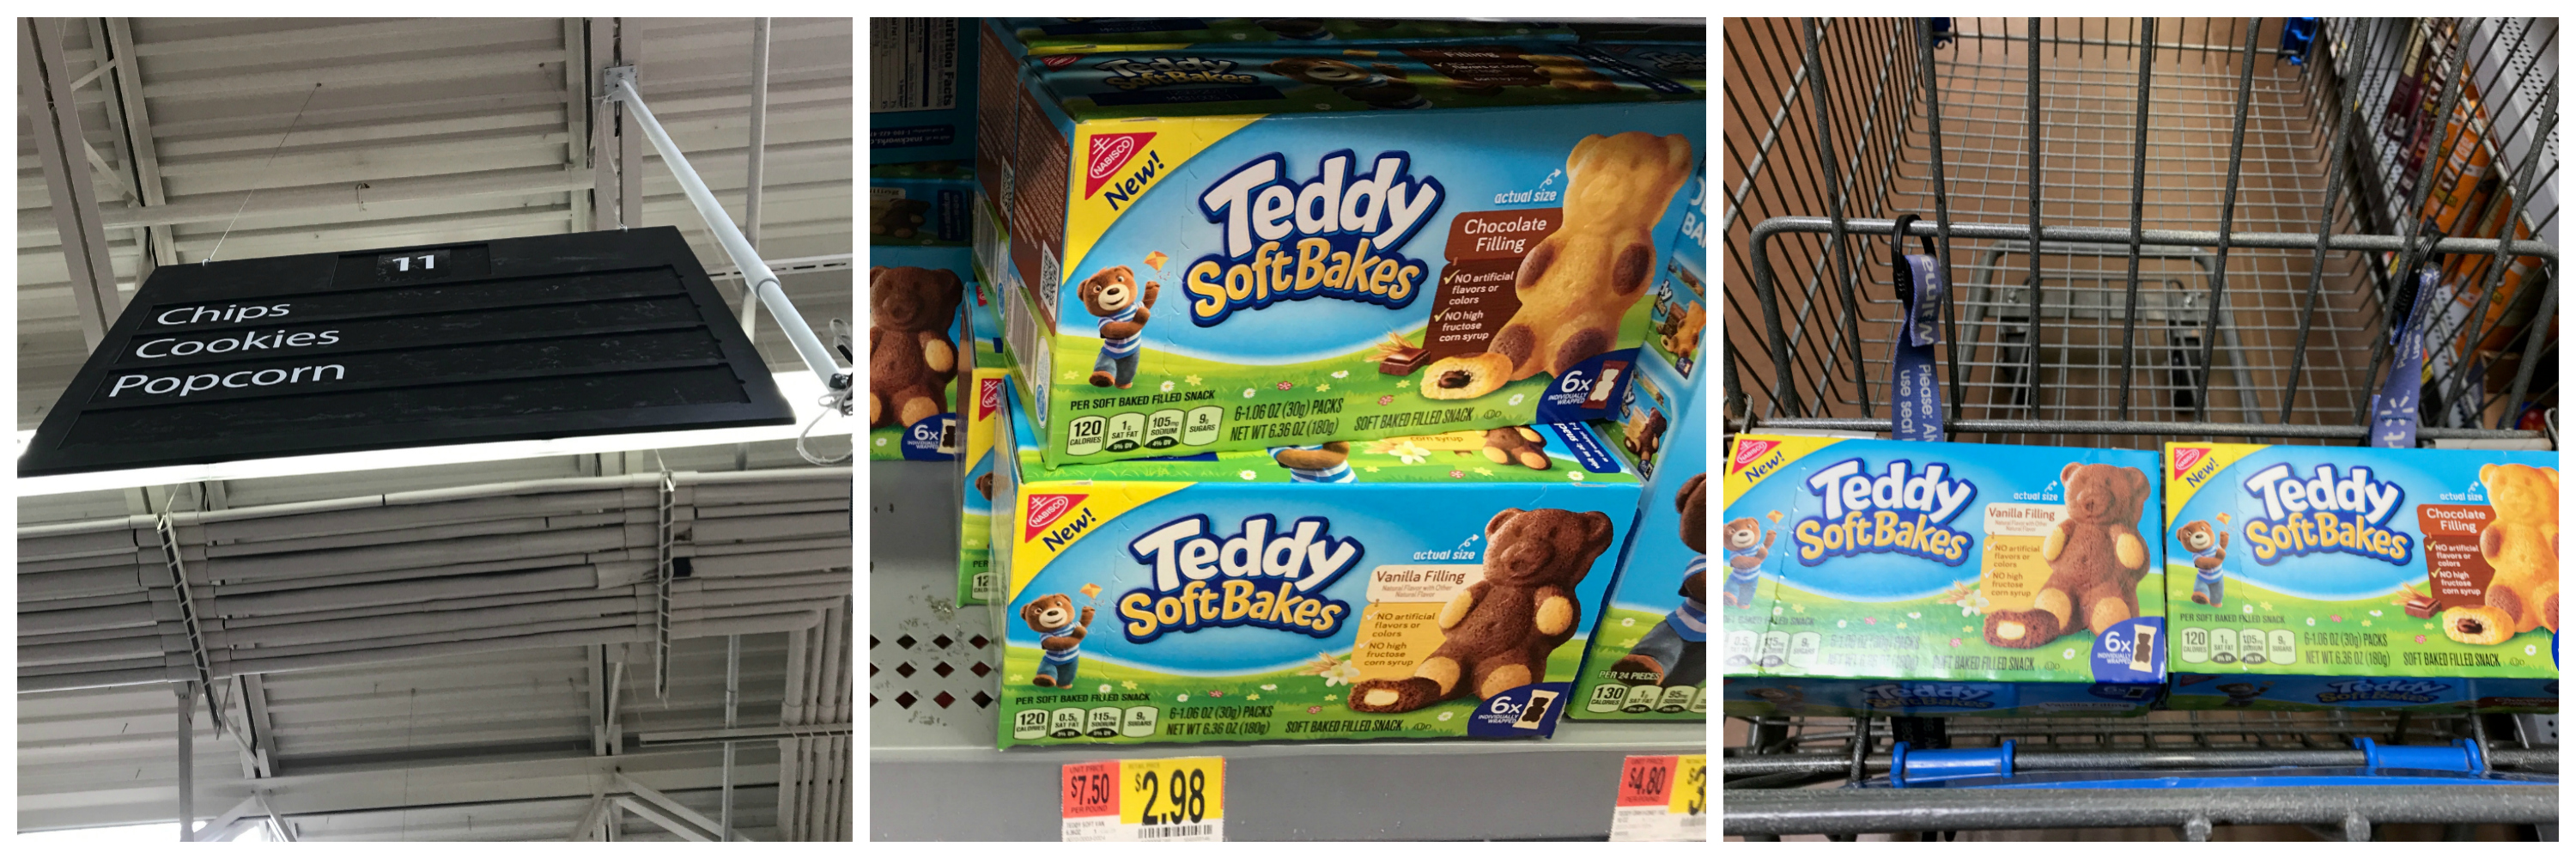 Teddy Soft Bakes Walmart In Store Photo